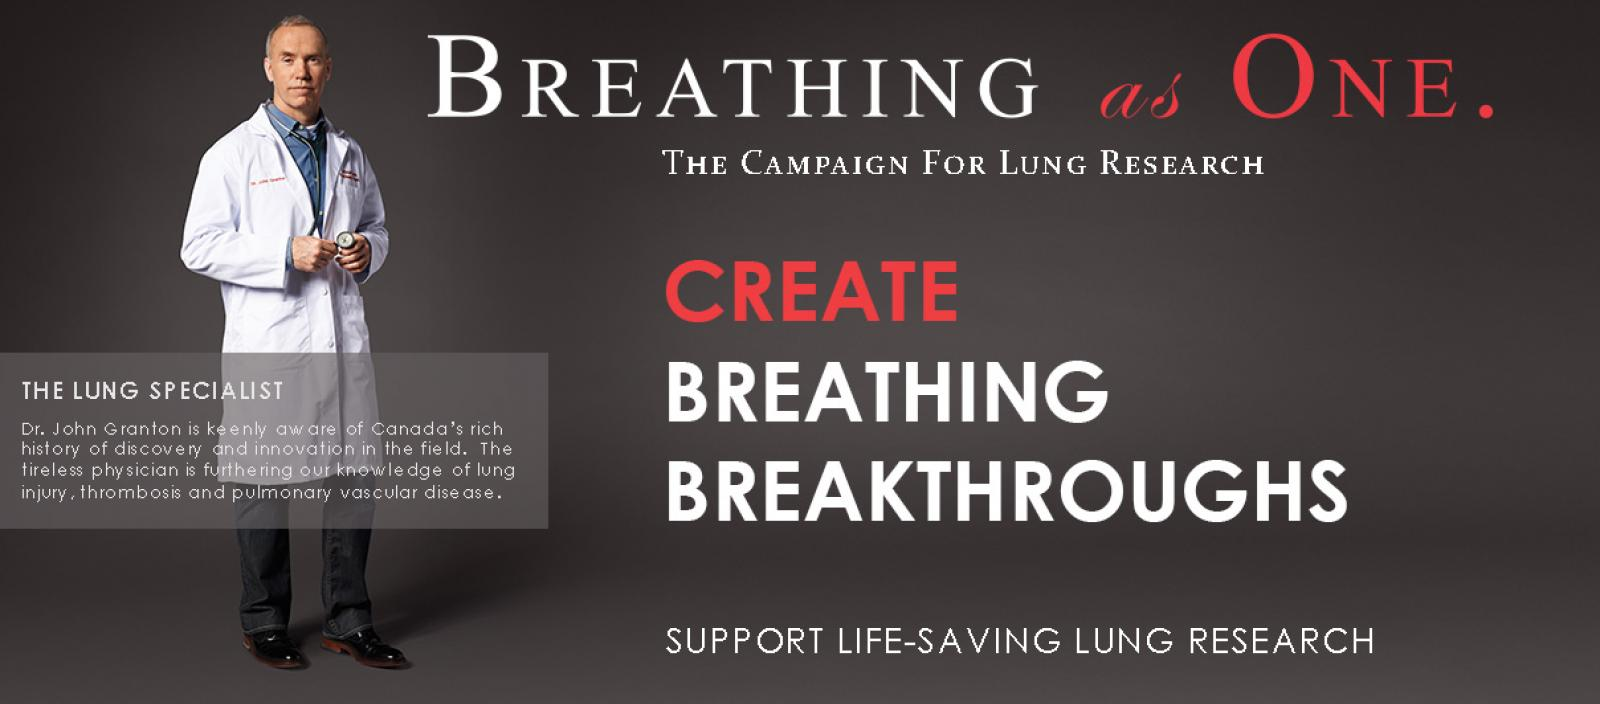 Breathing as One: Create Breathing Breakthroughs.